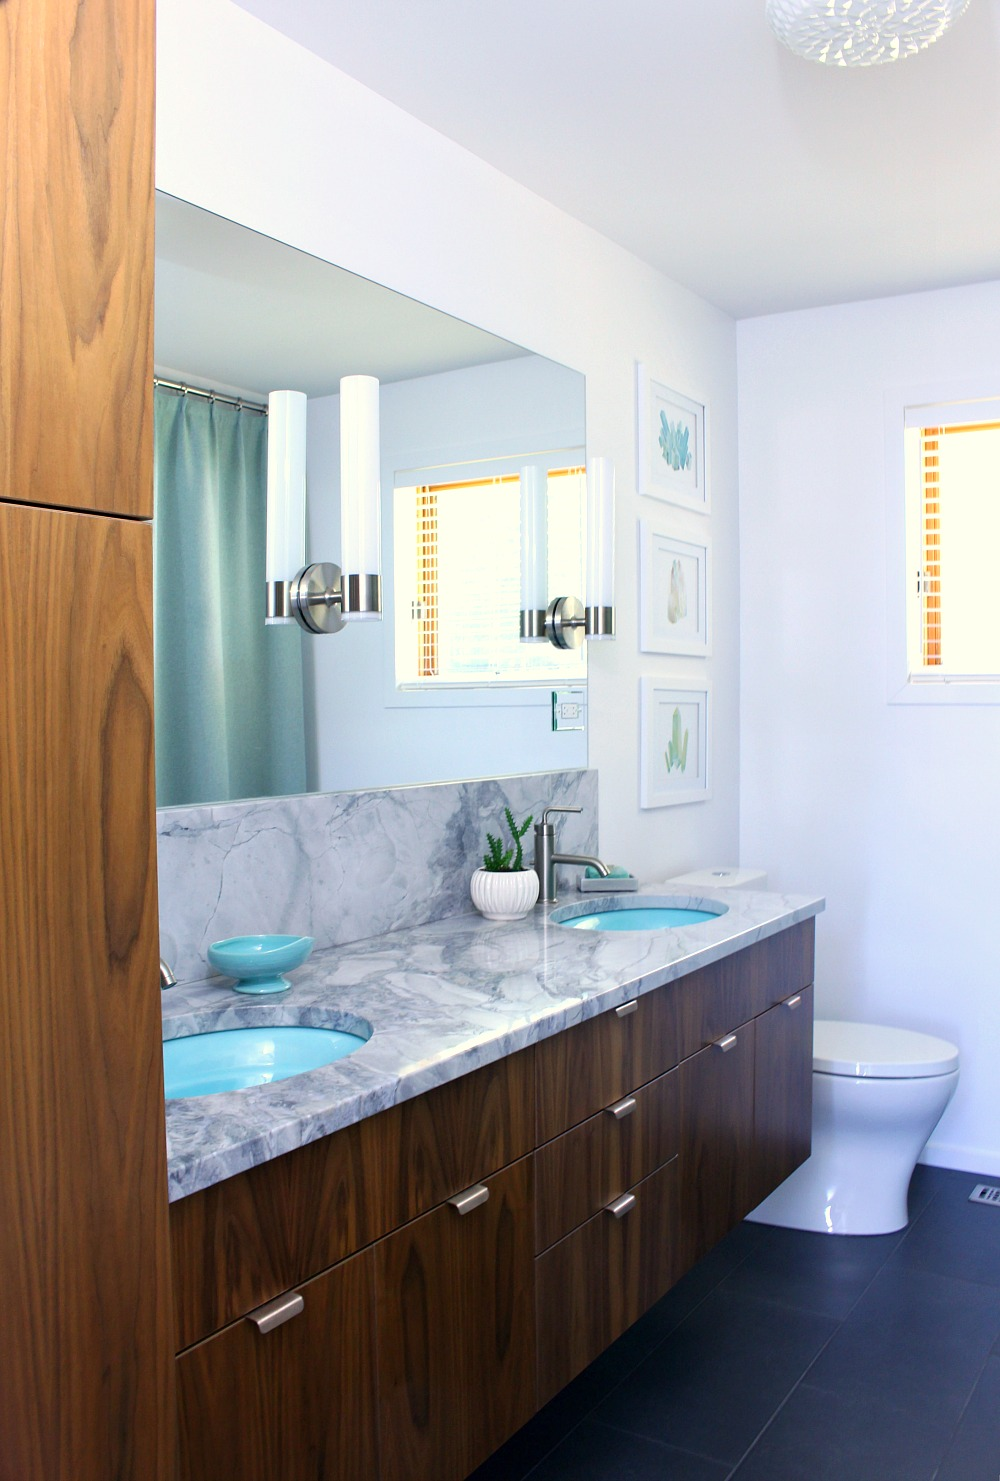 Mid Century Modern Bathroom Remodel a mid-century modern inspired bathroom renovation - before + after